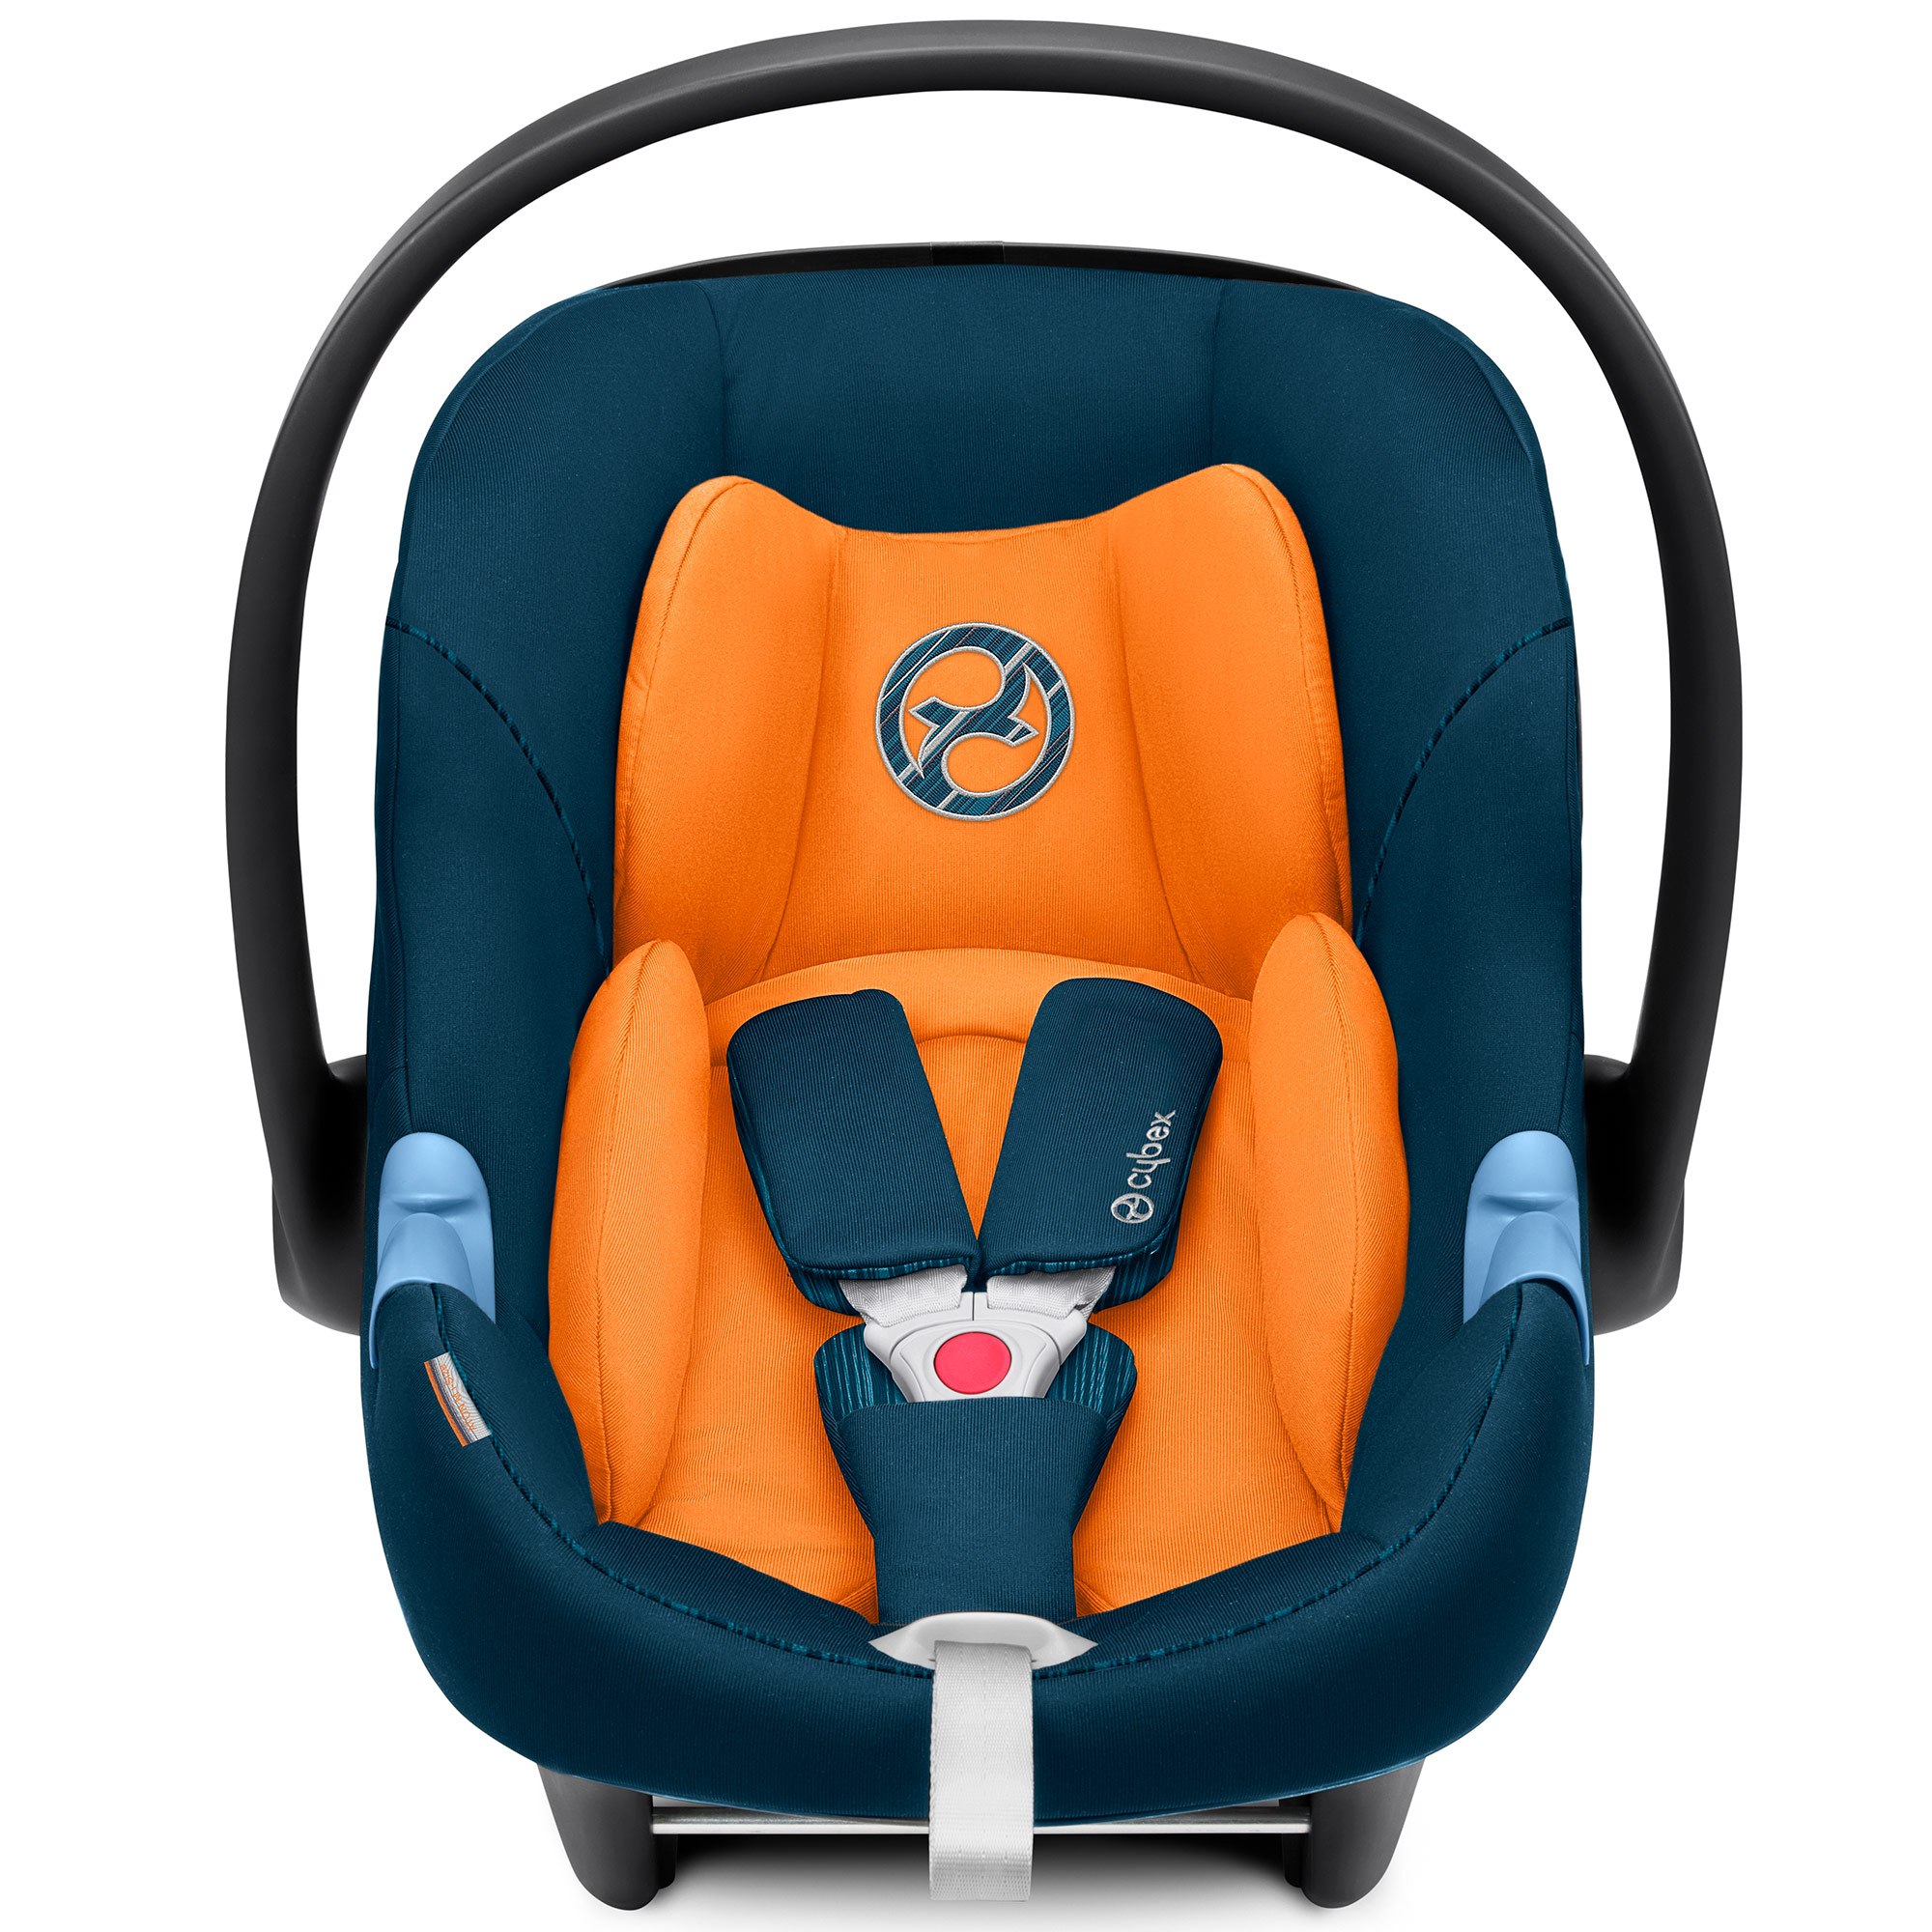 PVC RAINCOVER FITS MAMAS /& PAPAS M /& P CYBEX ATON INFANT CARRIER CAR SEAT £11.99